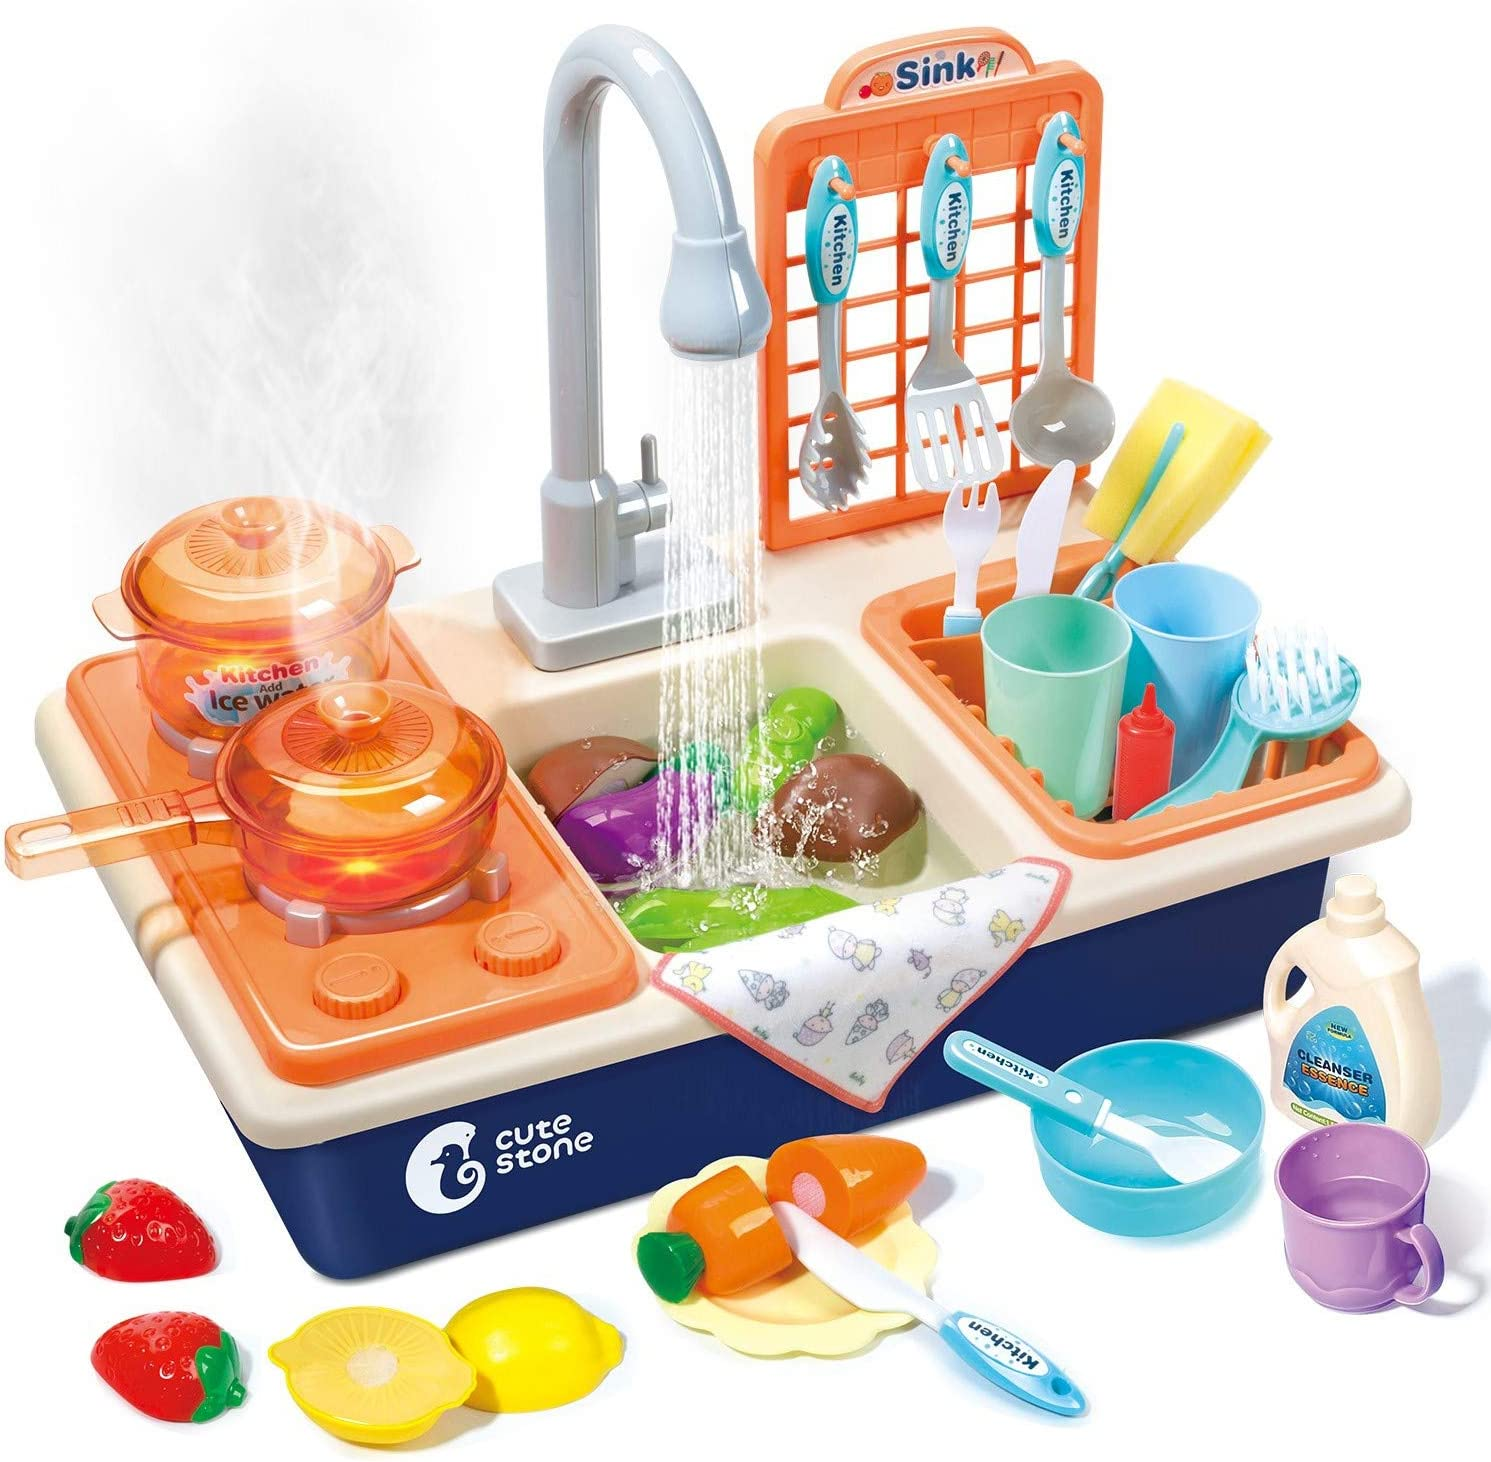 Kids Pretend Play Kitchen Sink Toys with Spray Light /&Sound Play Cooking Stove